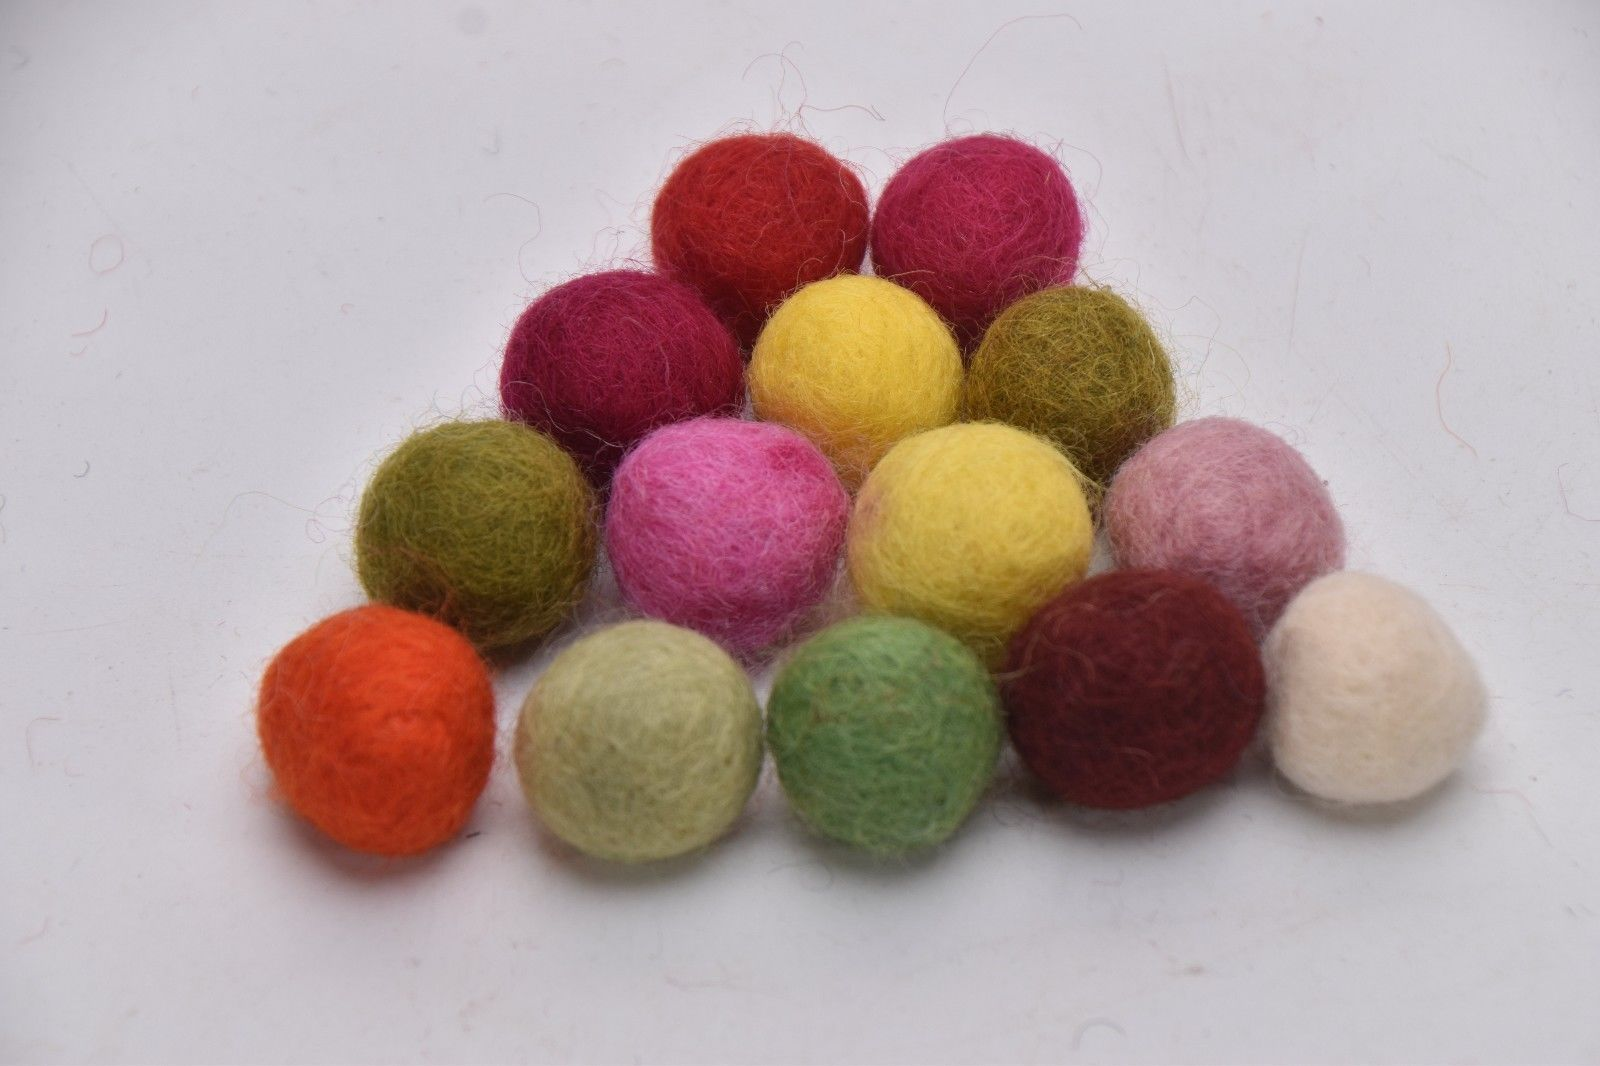 HOTPOT PAD MULTI COLOR POM BALLS FRECKLE Felt Ball ROUND Wool Circle NEPAL